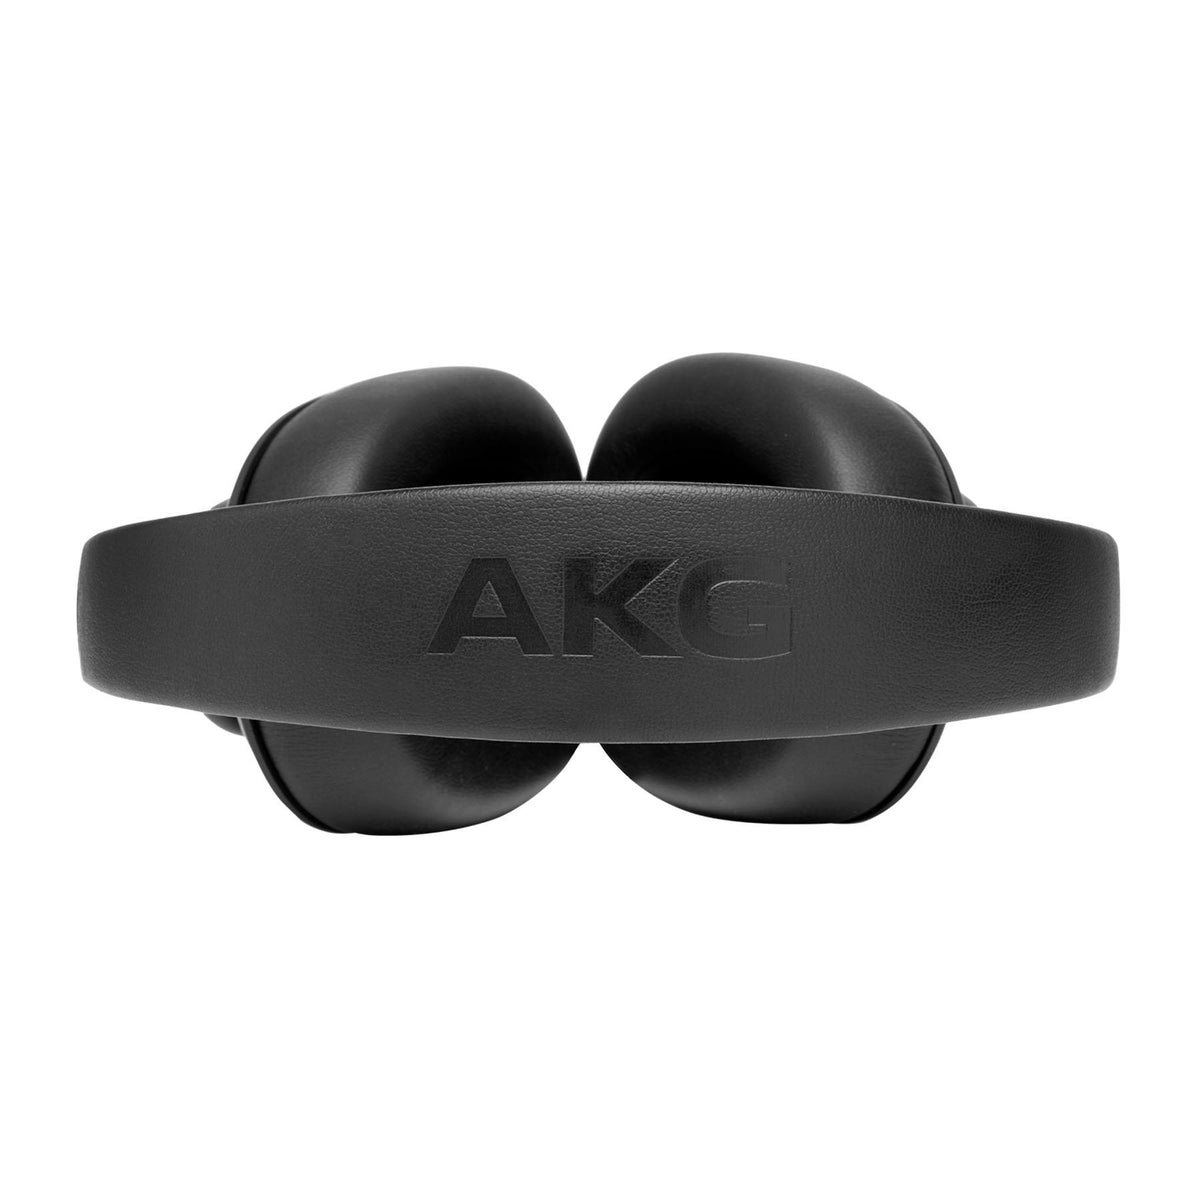 AKG K371 Over-Ear Closed-Back Foldable Studio Headphones